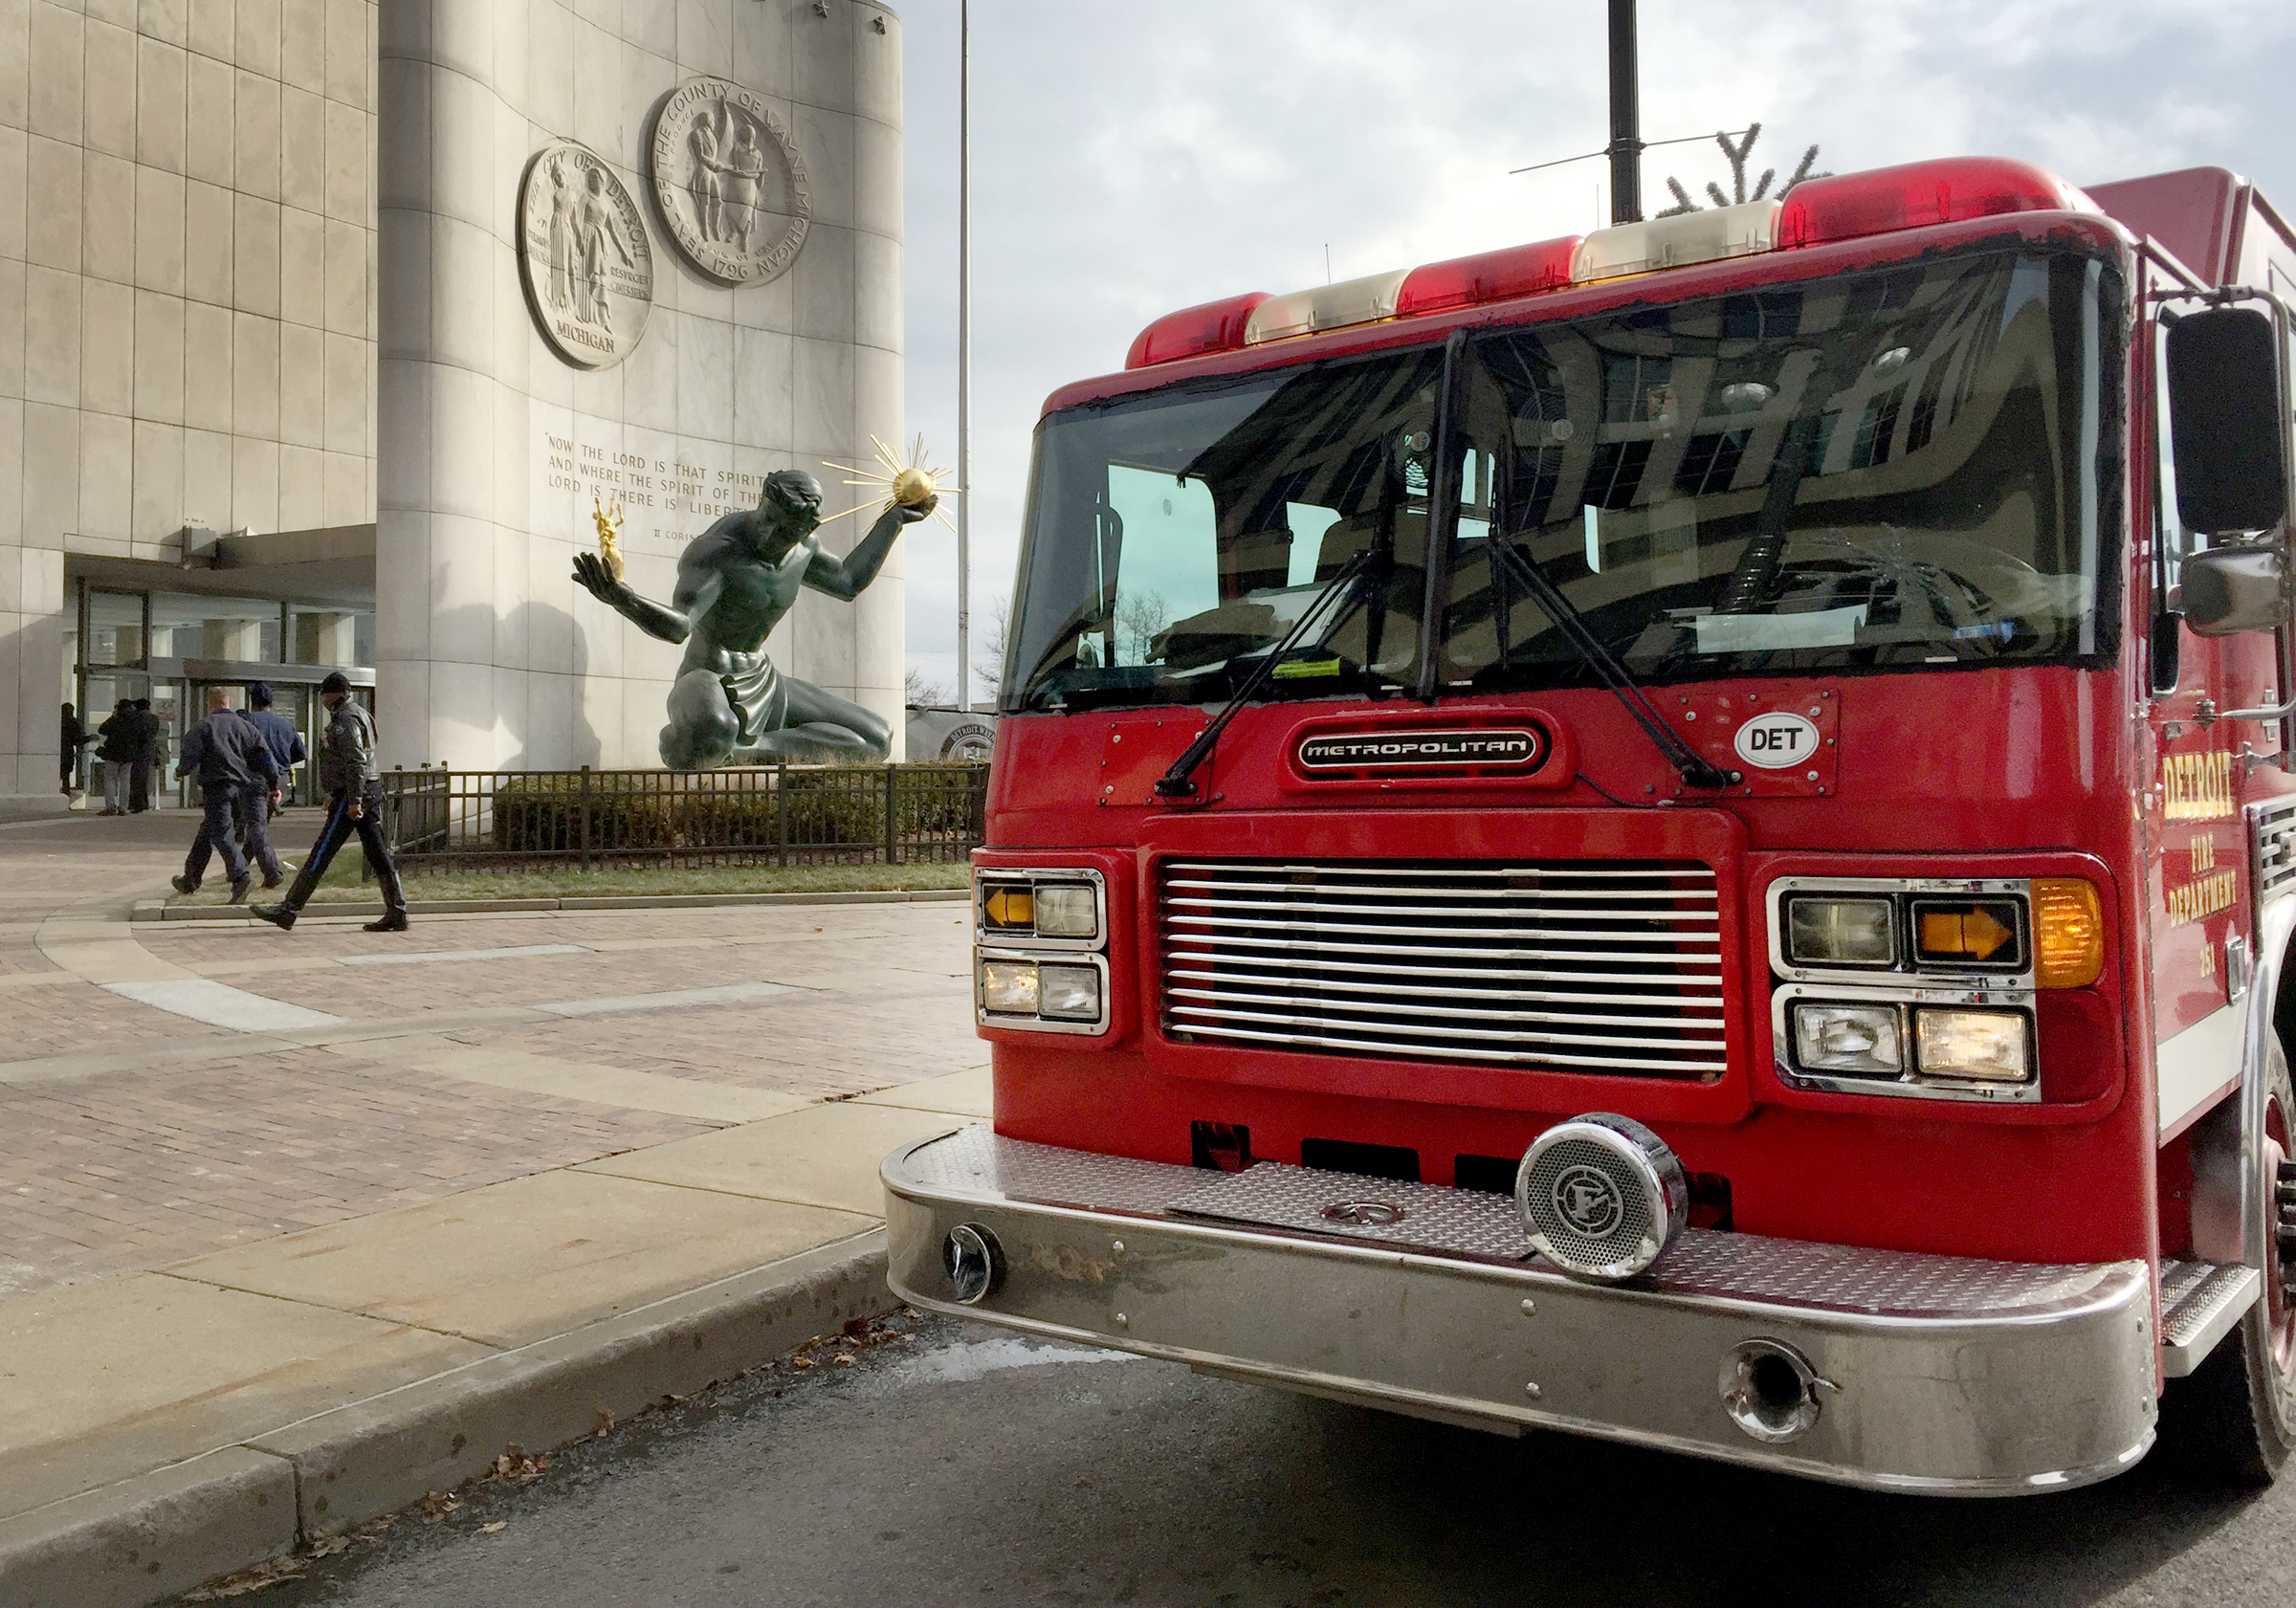 Detroit fire fighters and EMS responded to the Coleman A. Young Municipal Center to rescue people from elevators and assist others down the stairs after a massive power outage hit downtown Detroit, Tuesday, Dec. 2, 2014.